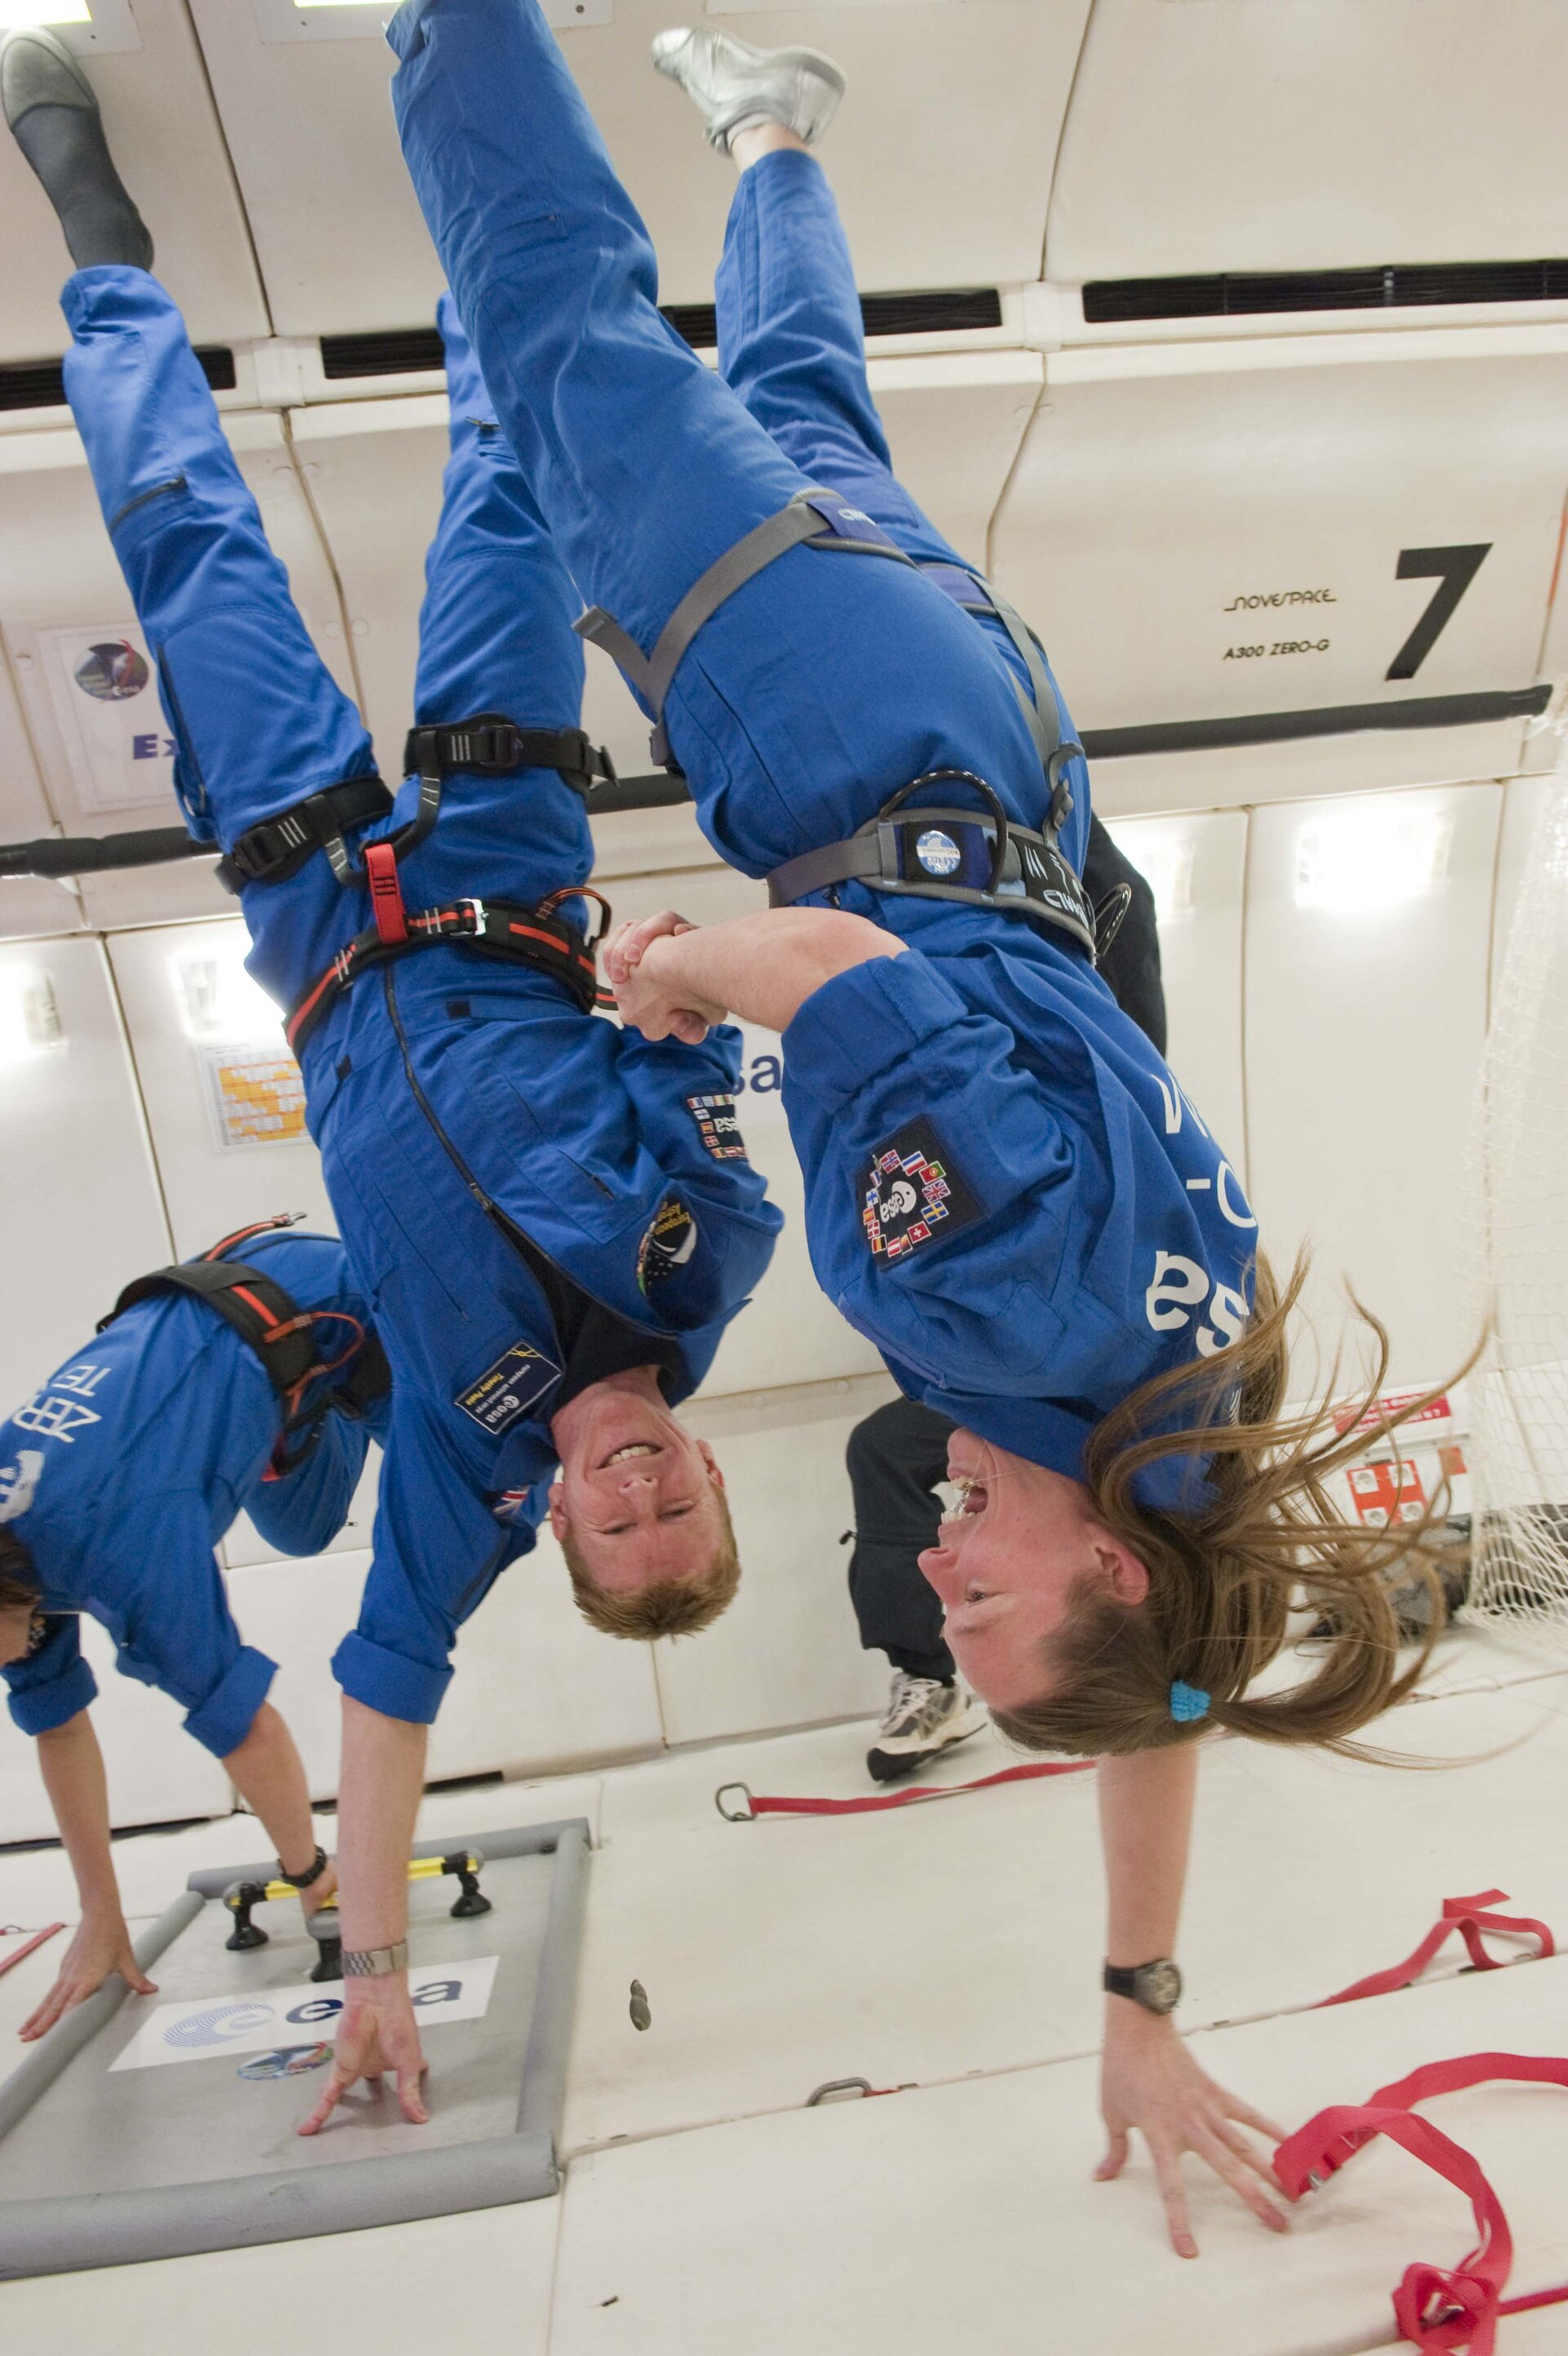 ESA astronauts during parabolic flight aboard the Airbus A300 Zero-G